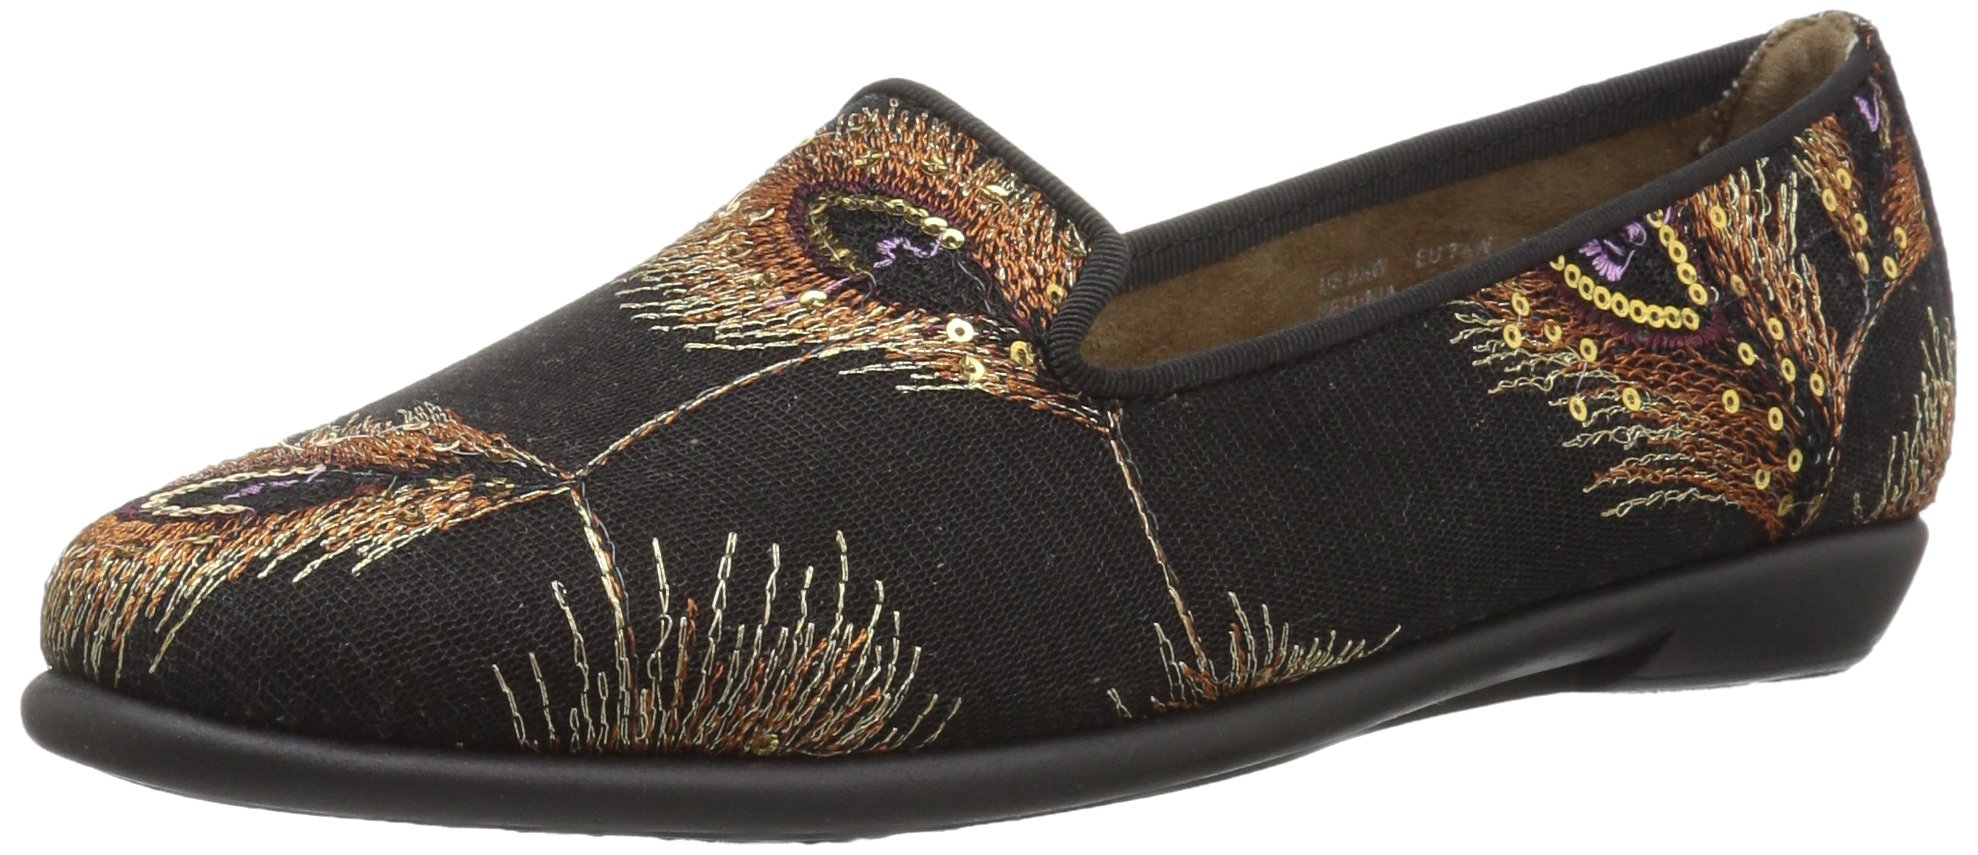 Aerosoles Women's Betunia Loafer, Black Metal Feather, 9 M US